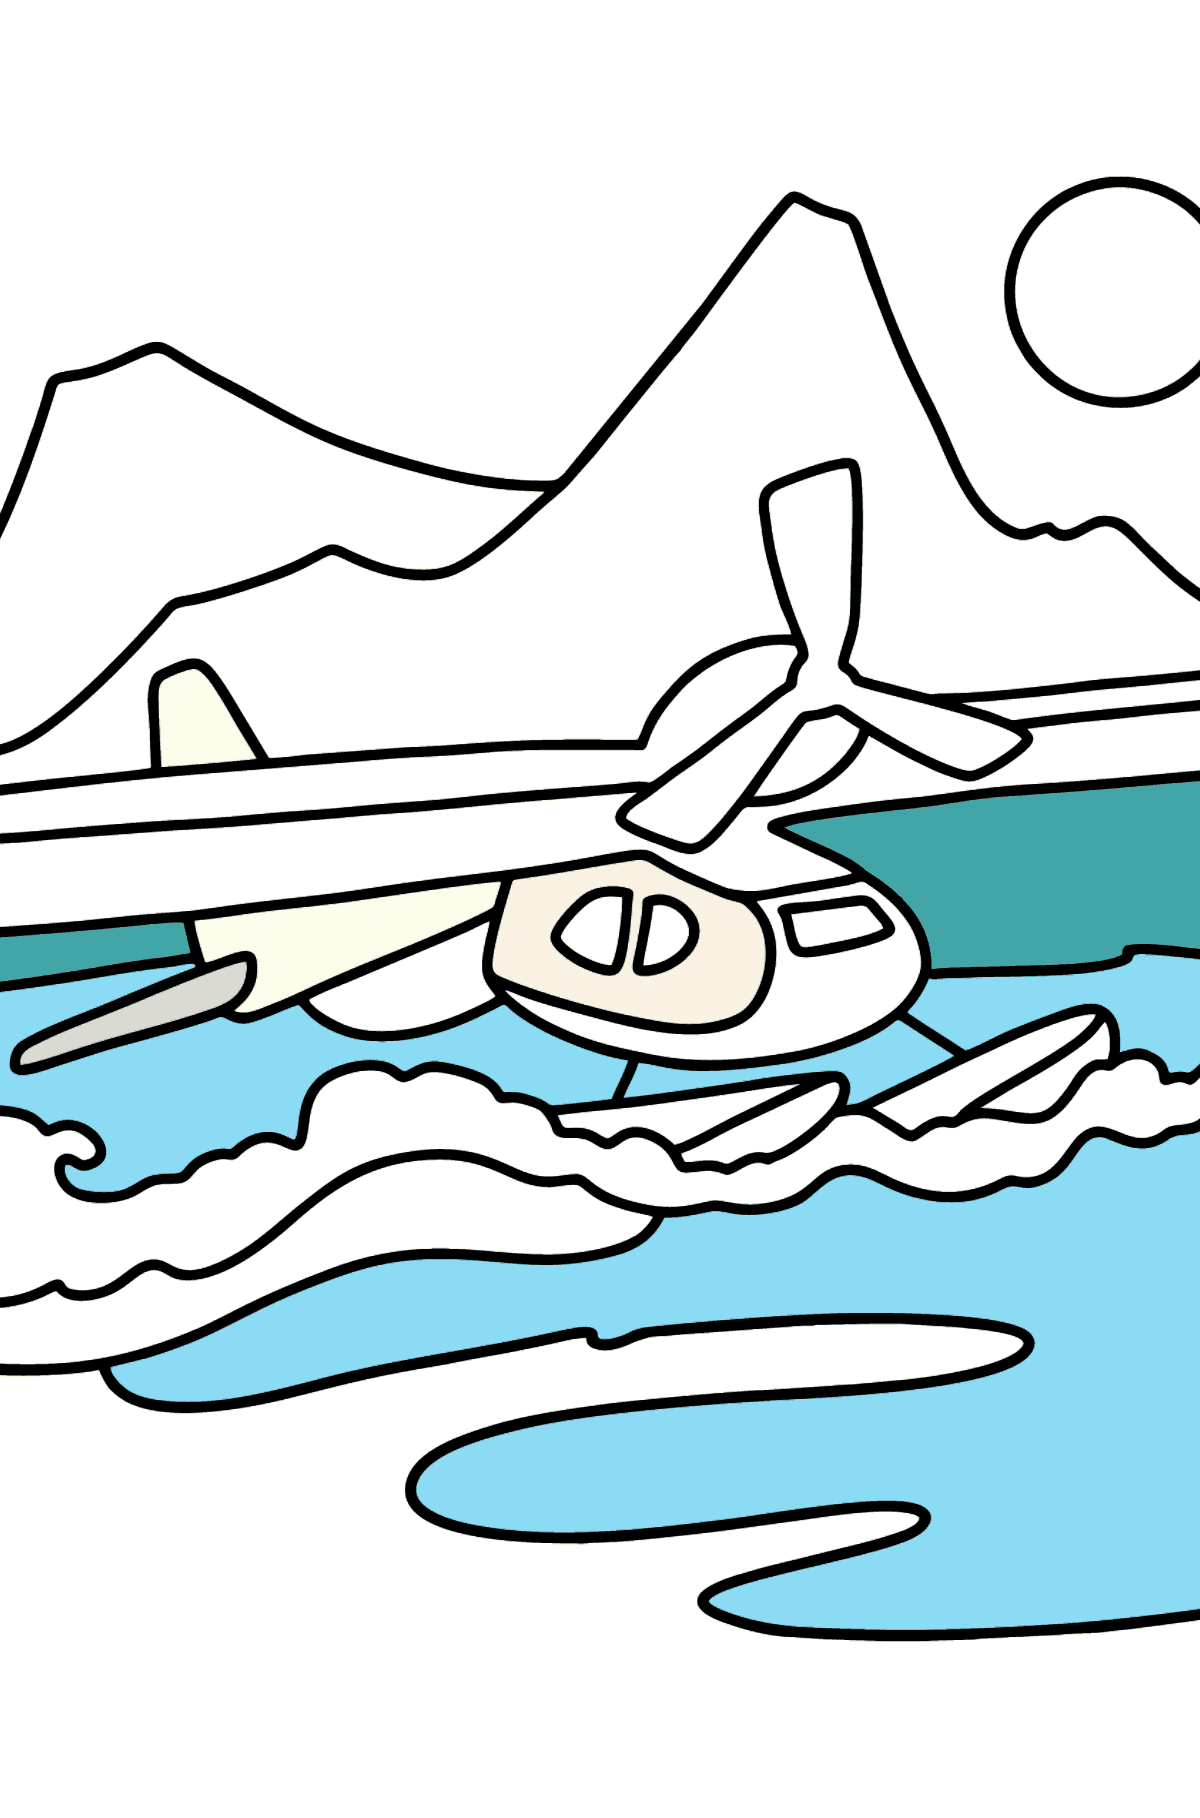 Seaplane coloring page - Coloring Pages for Kids